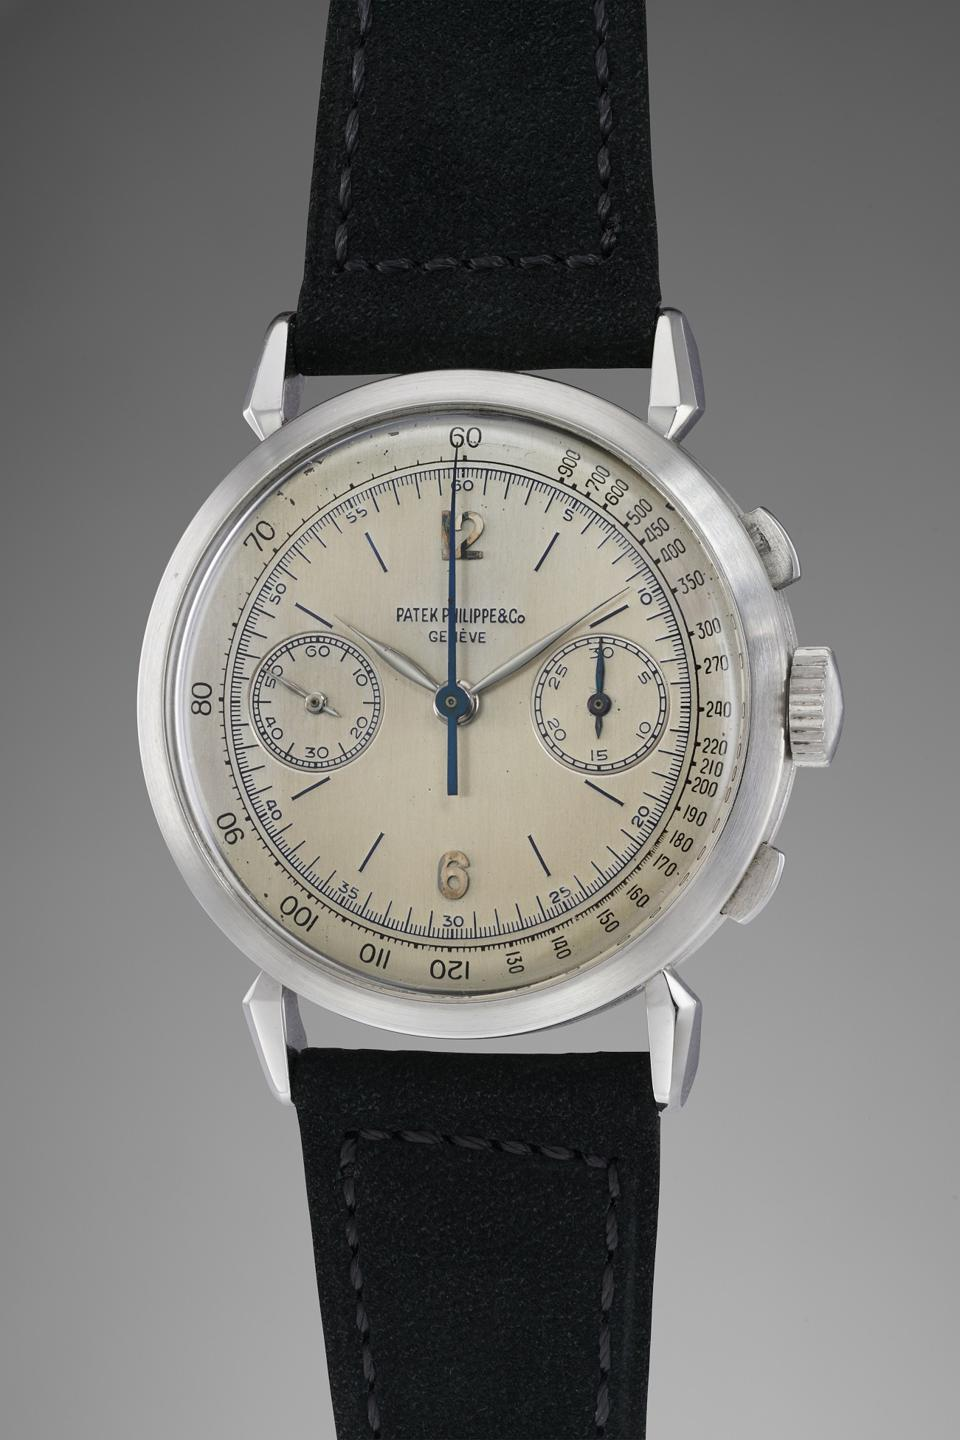 Patek Philippe 1579 in platinum owned by Jean-Claude Biver fetched $2 million